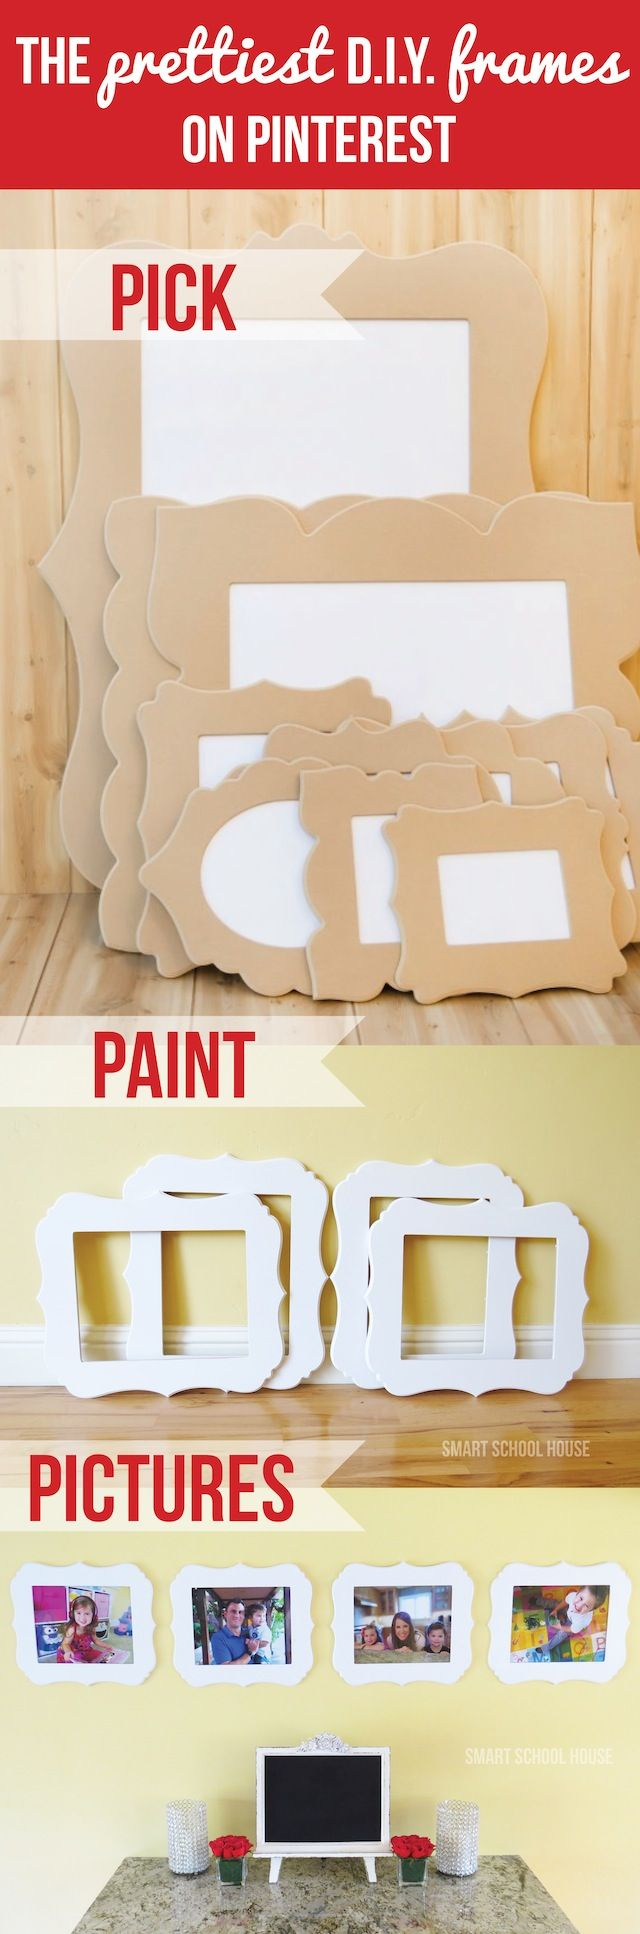 17 best images about bout that cardboard life on pinterest pizza boxes storage boxes and child chair